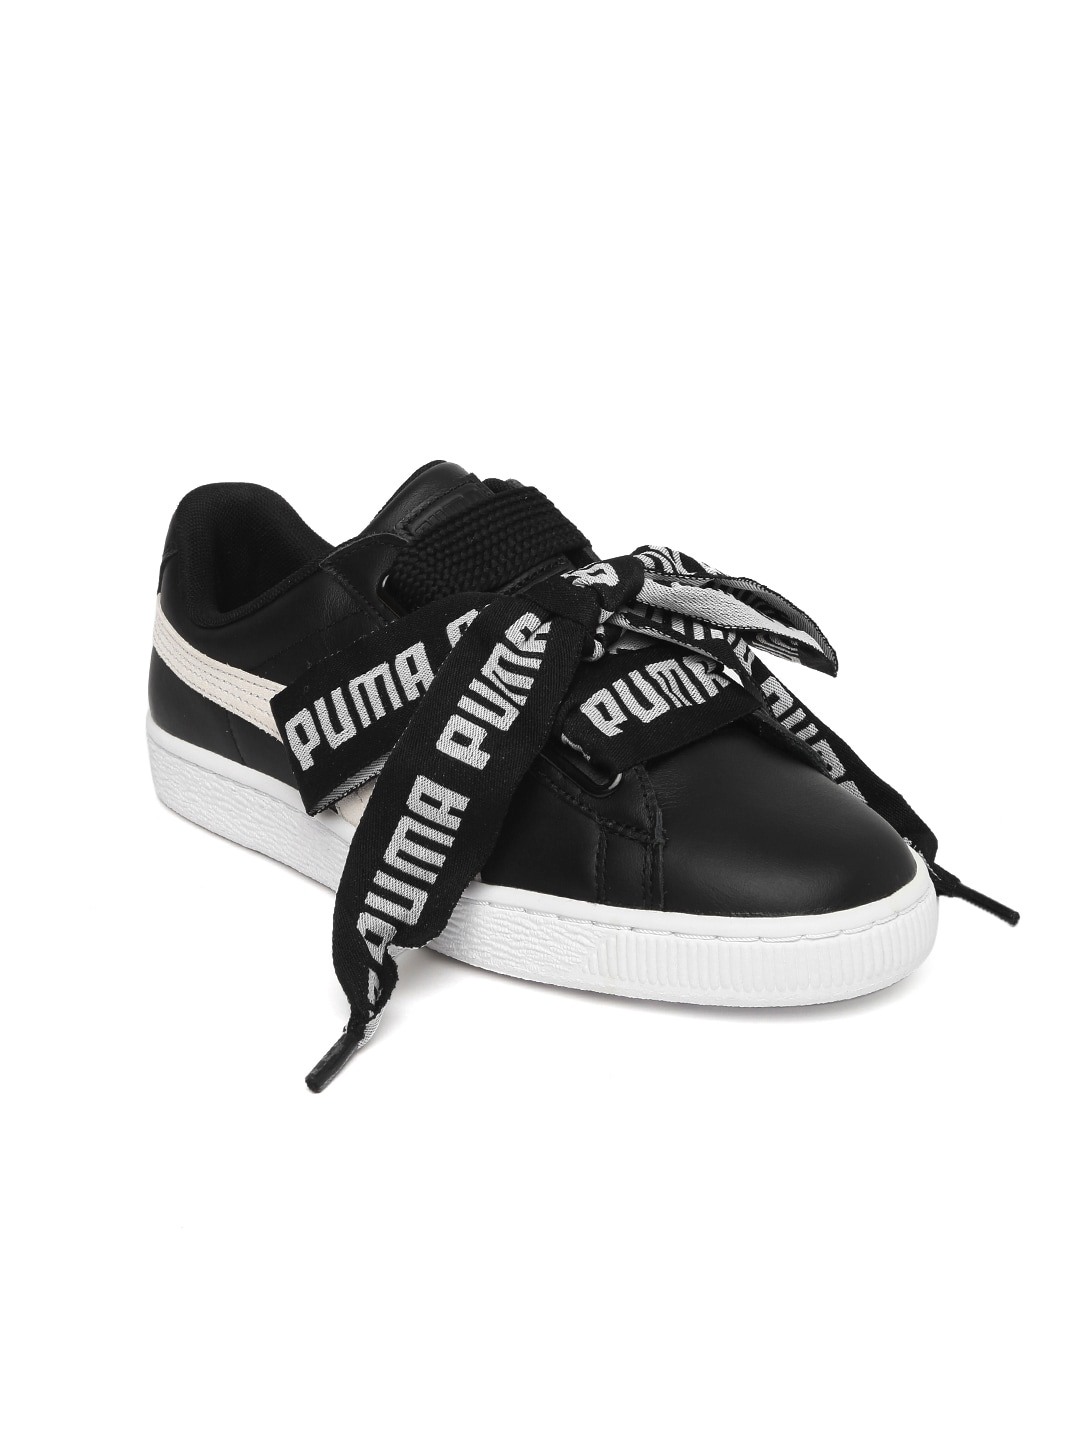 411d12941be Puma Tops Casual Shoes - Buy Puma Tops Casual Shoes online in India